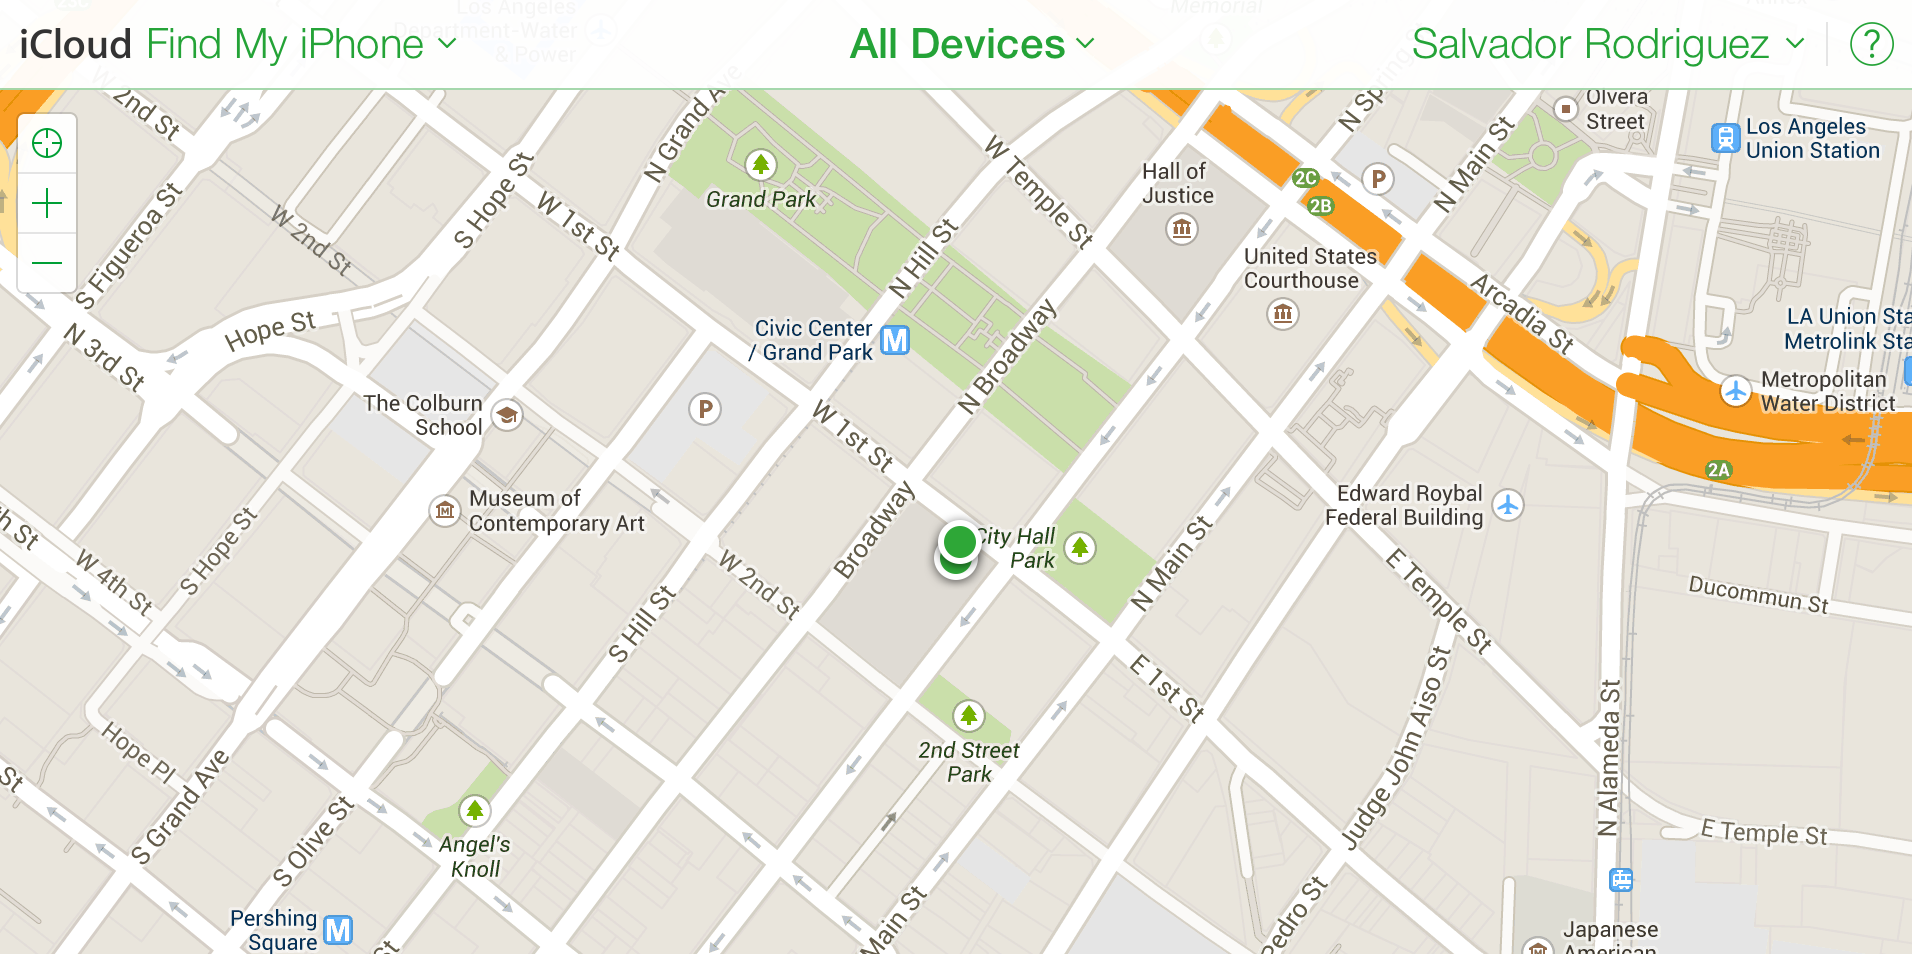 Many tech companies pledged to include anti-theft tools, like Apple's Find My iPhone app, on devices built after July 2015.